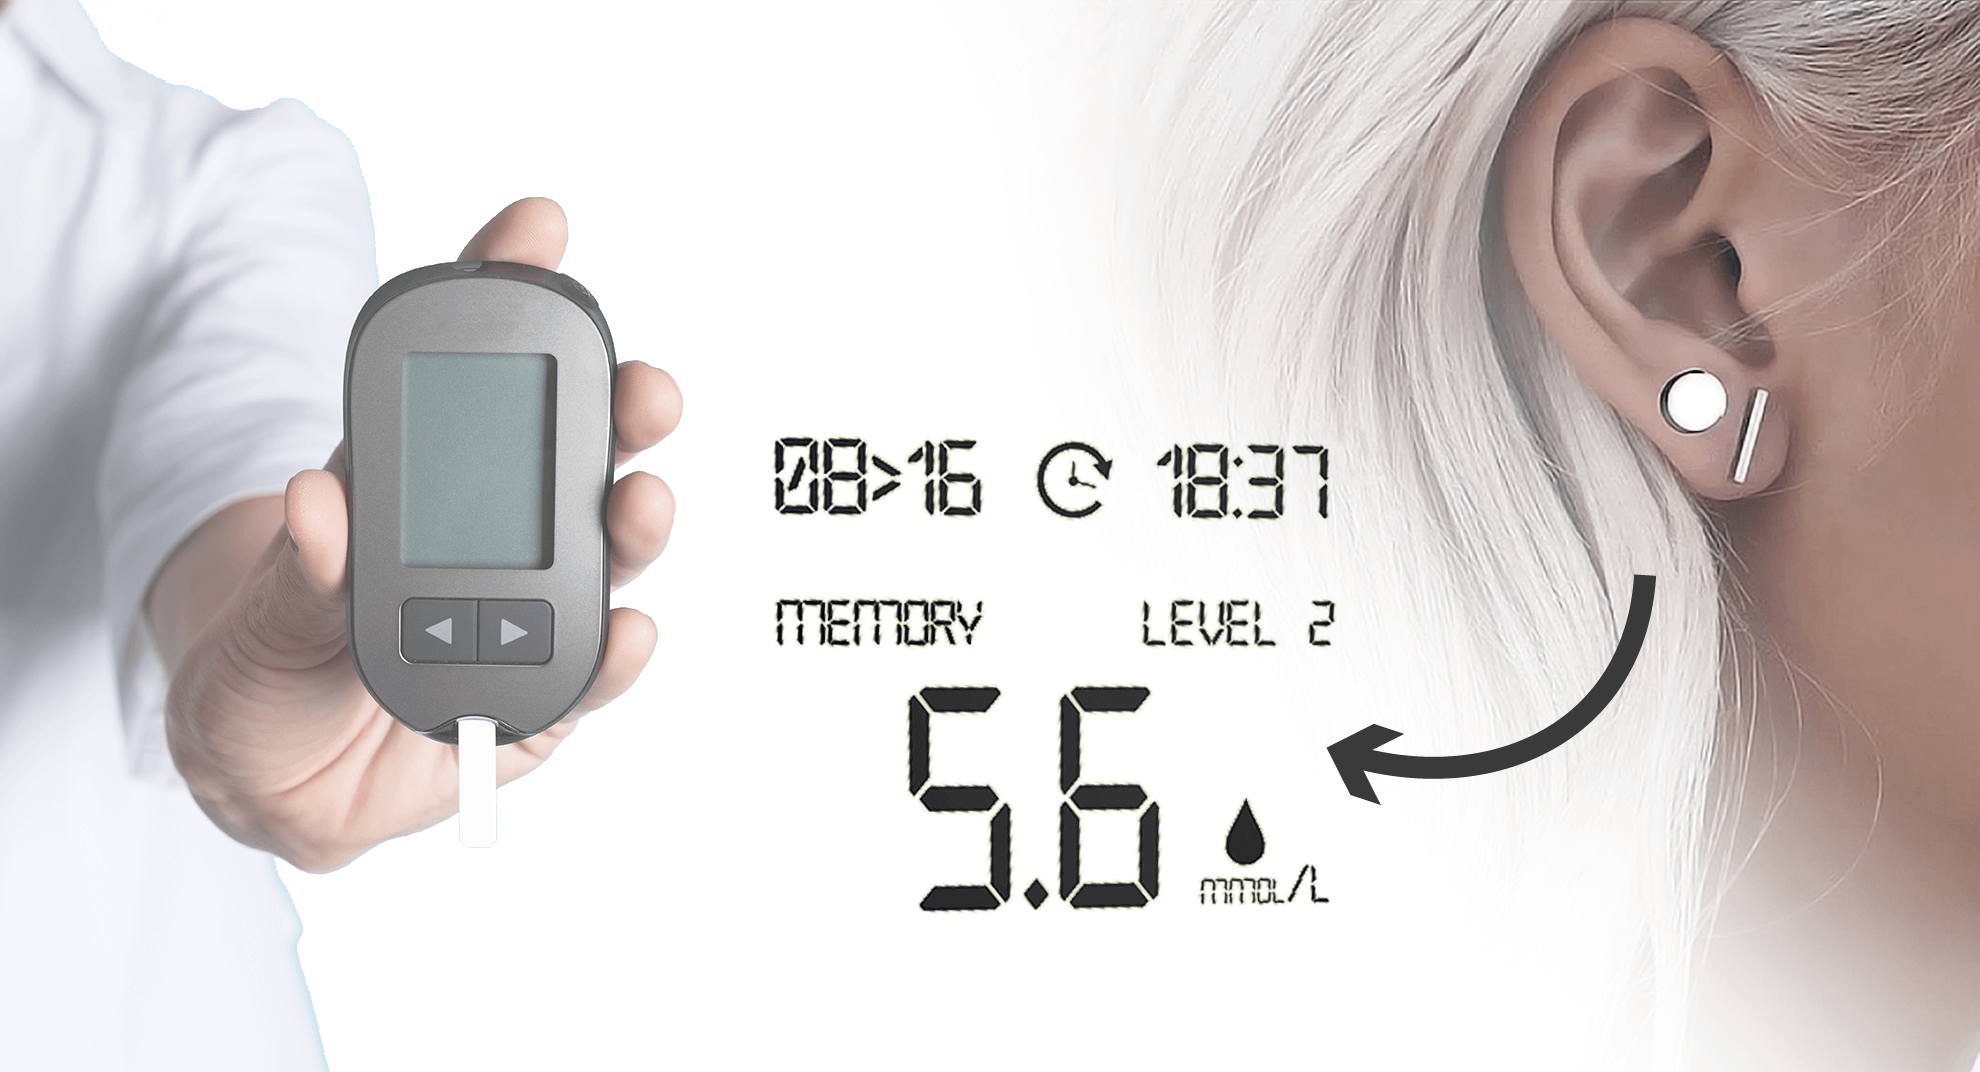 glucose meter, glucometer, earring, new technology, type 1 diabetes